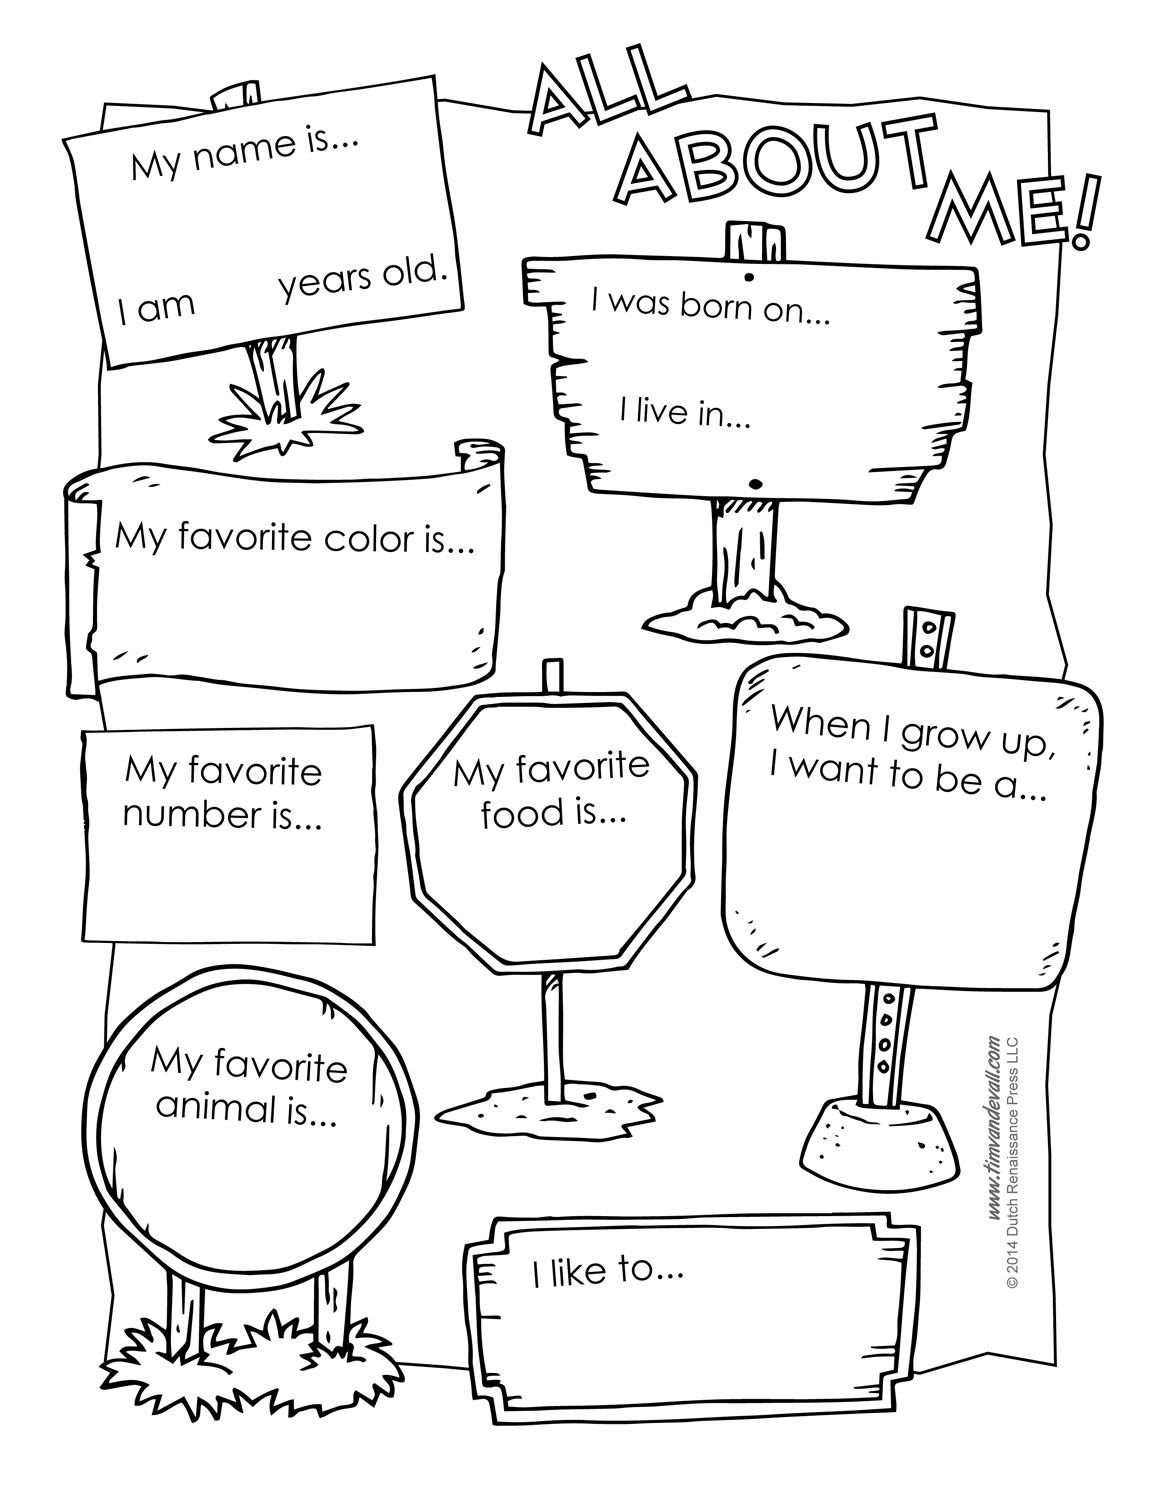 All About Me Preschool Template | 6 Best Images Of All About Me - Free Printable All About Me Worksheet